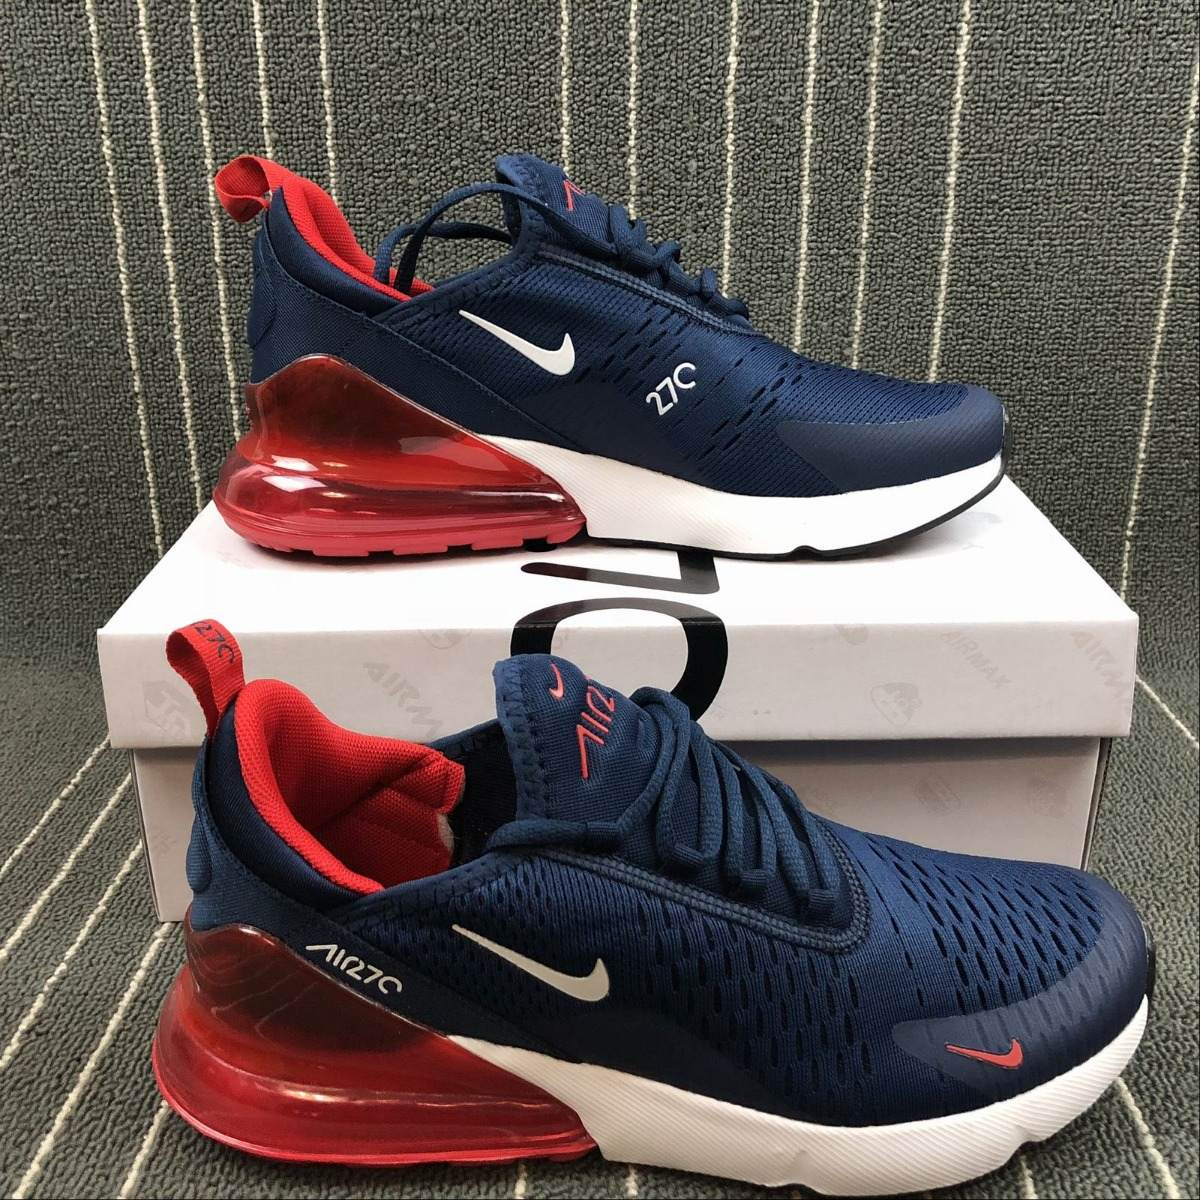 best website cfbf0 a8830 Zapatillas Nike Air Max 270 Navy-red 36-39 - Exclusive Line